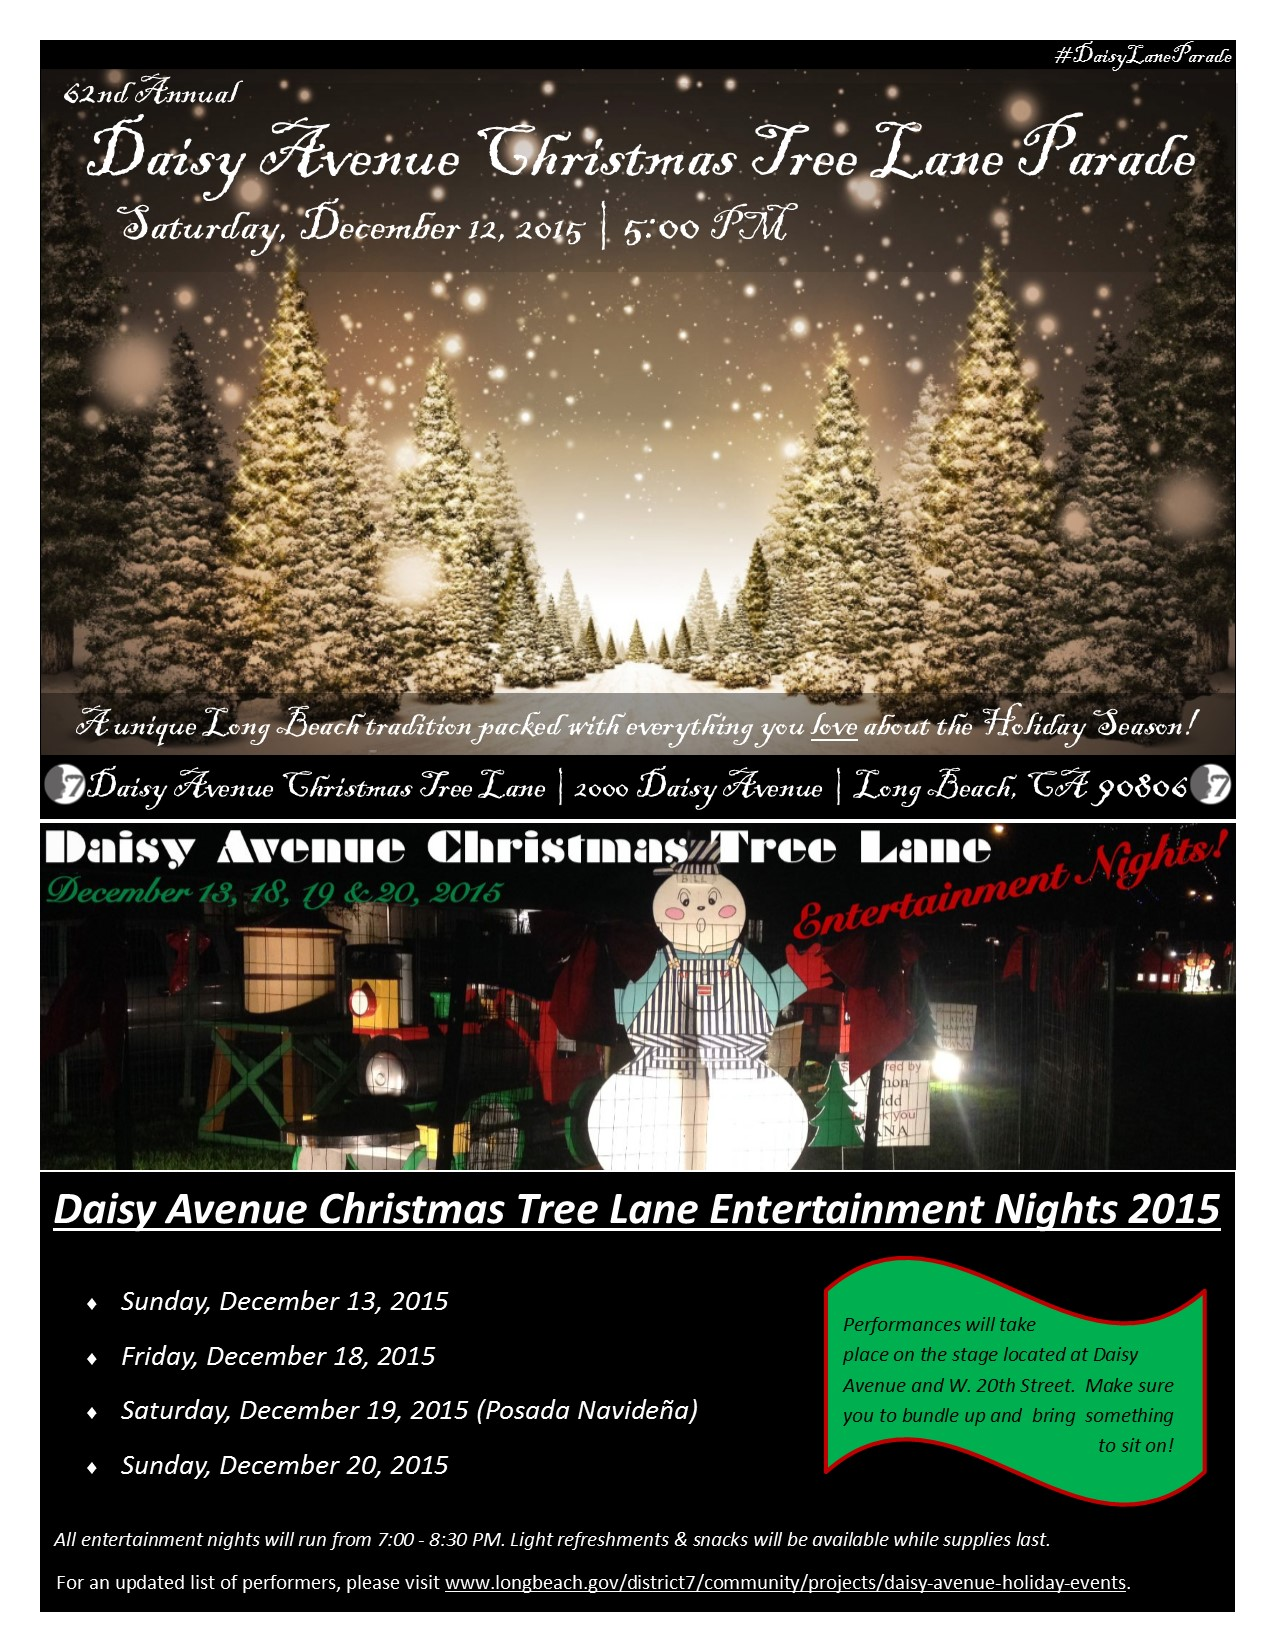 Daisy Avenue Holiday Events Flier 2015